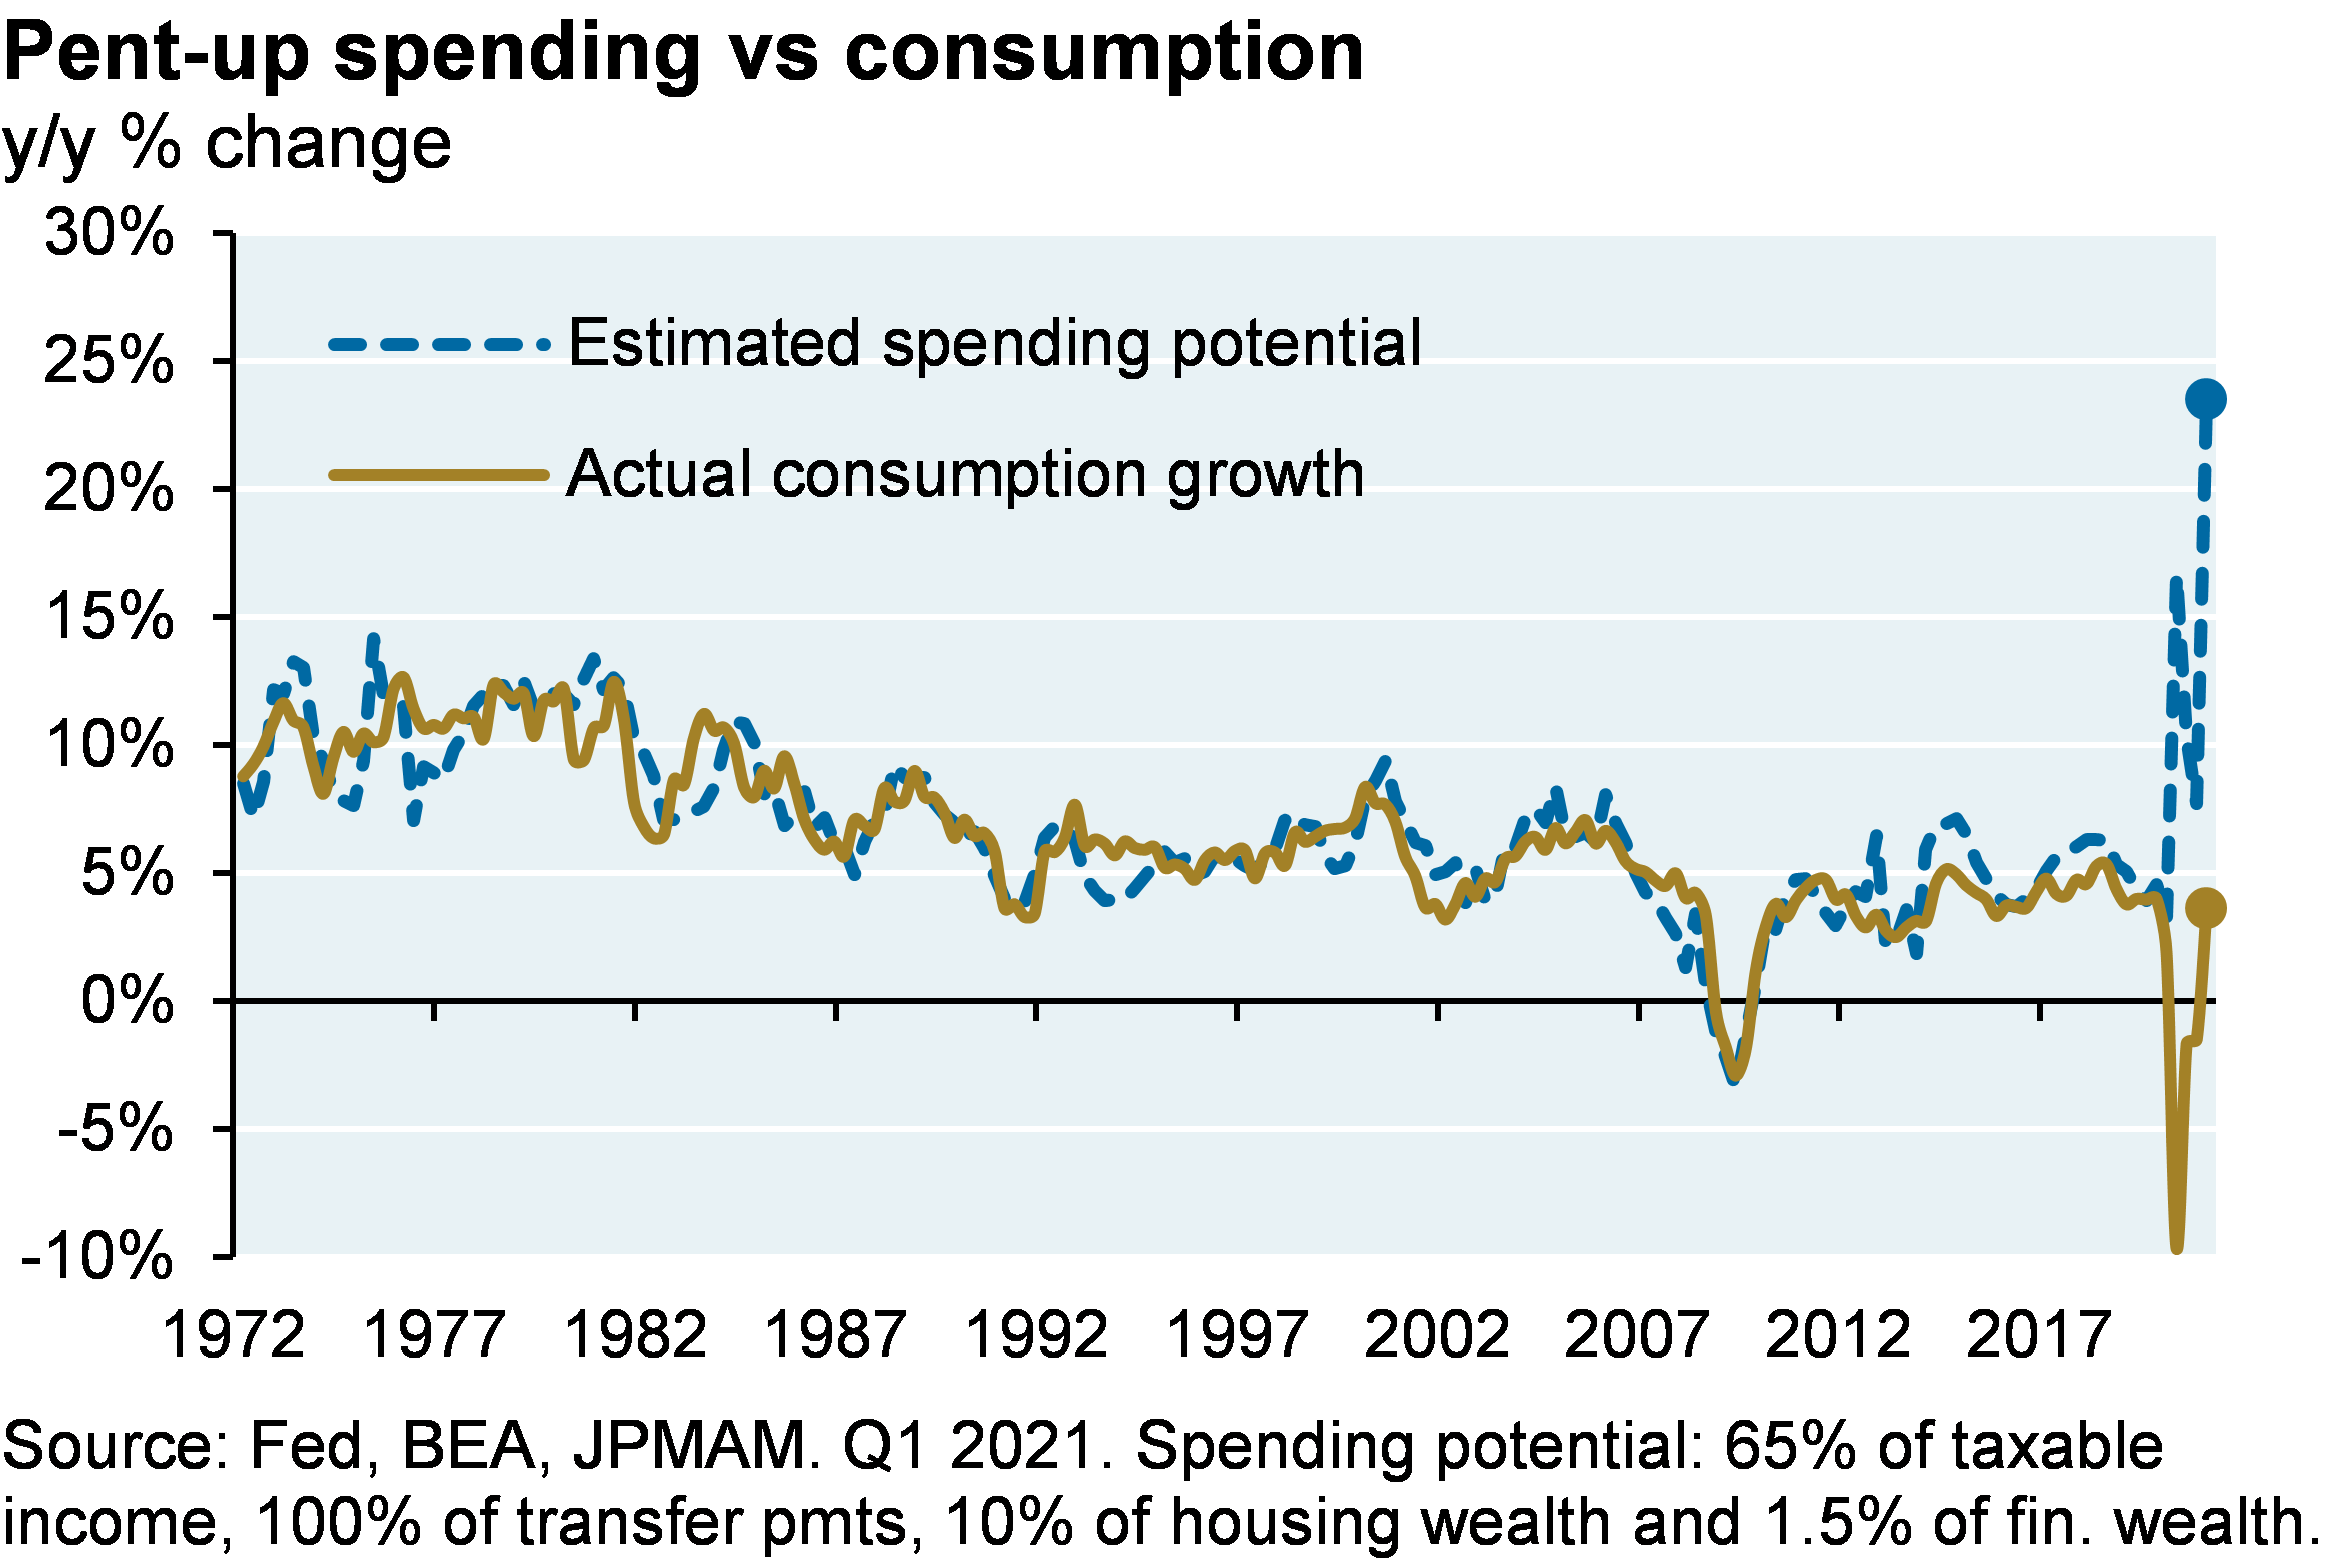 Line chart shows estimated spending potential and actual consumption growth, shown as the year-over-year percent change. Chart shows a spike in spending potential to around 25% from around 5% despite a spike in consumption growth from around -10% to 5%.